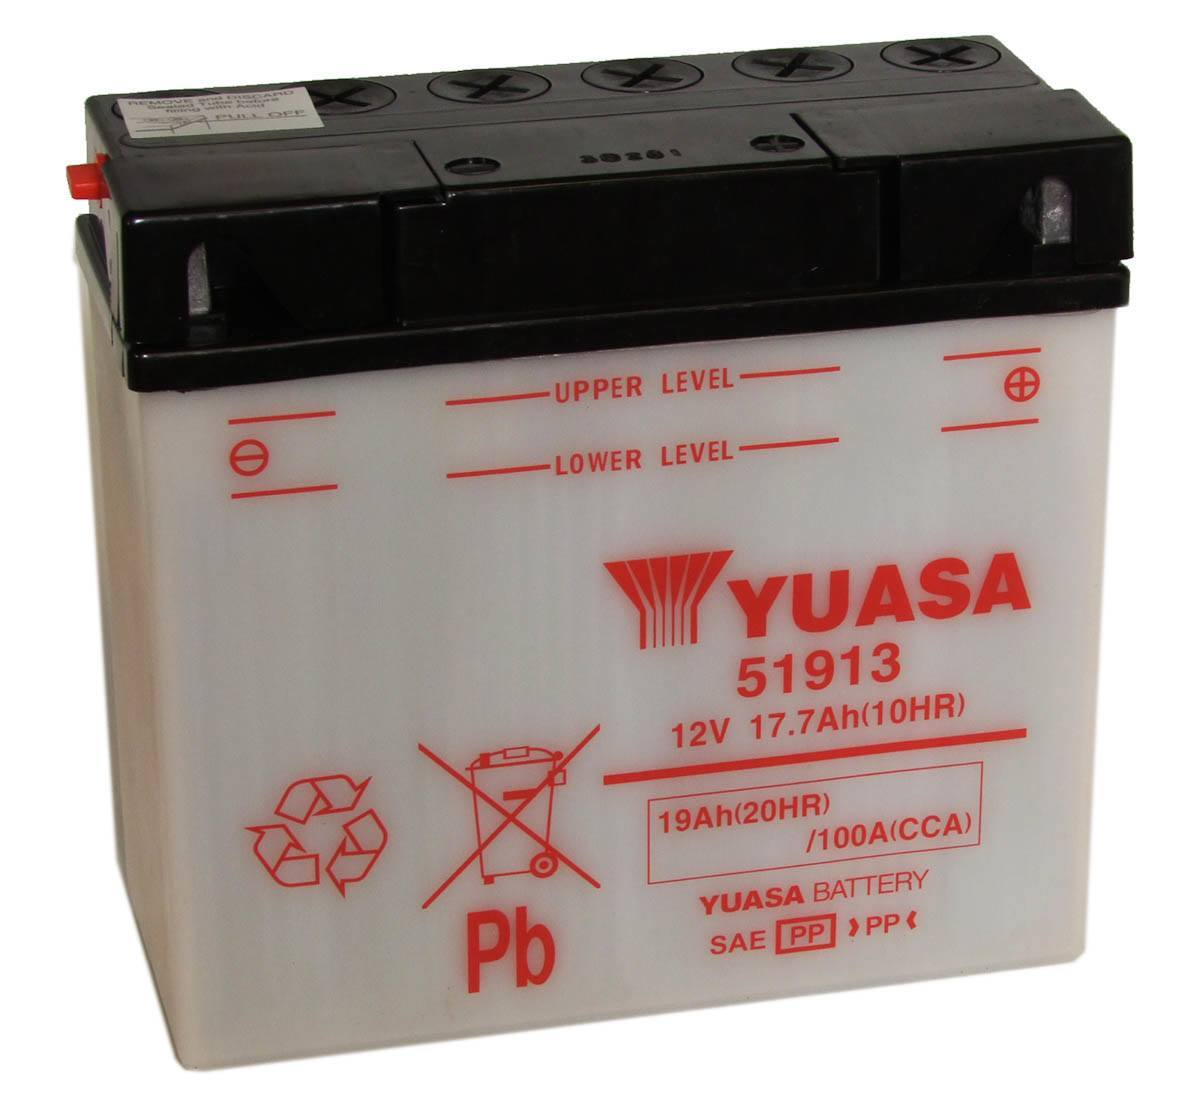 Yuasa 51913 12V BMW Motorcycle Battery